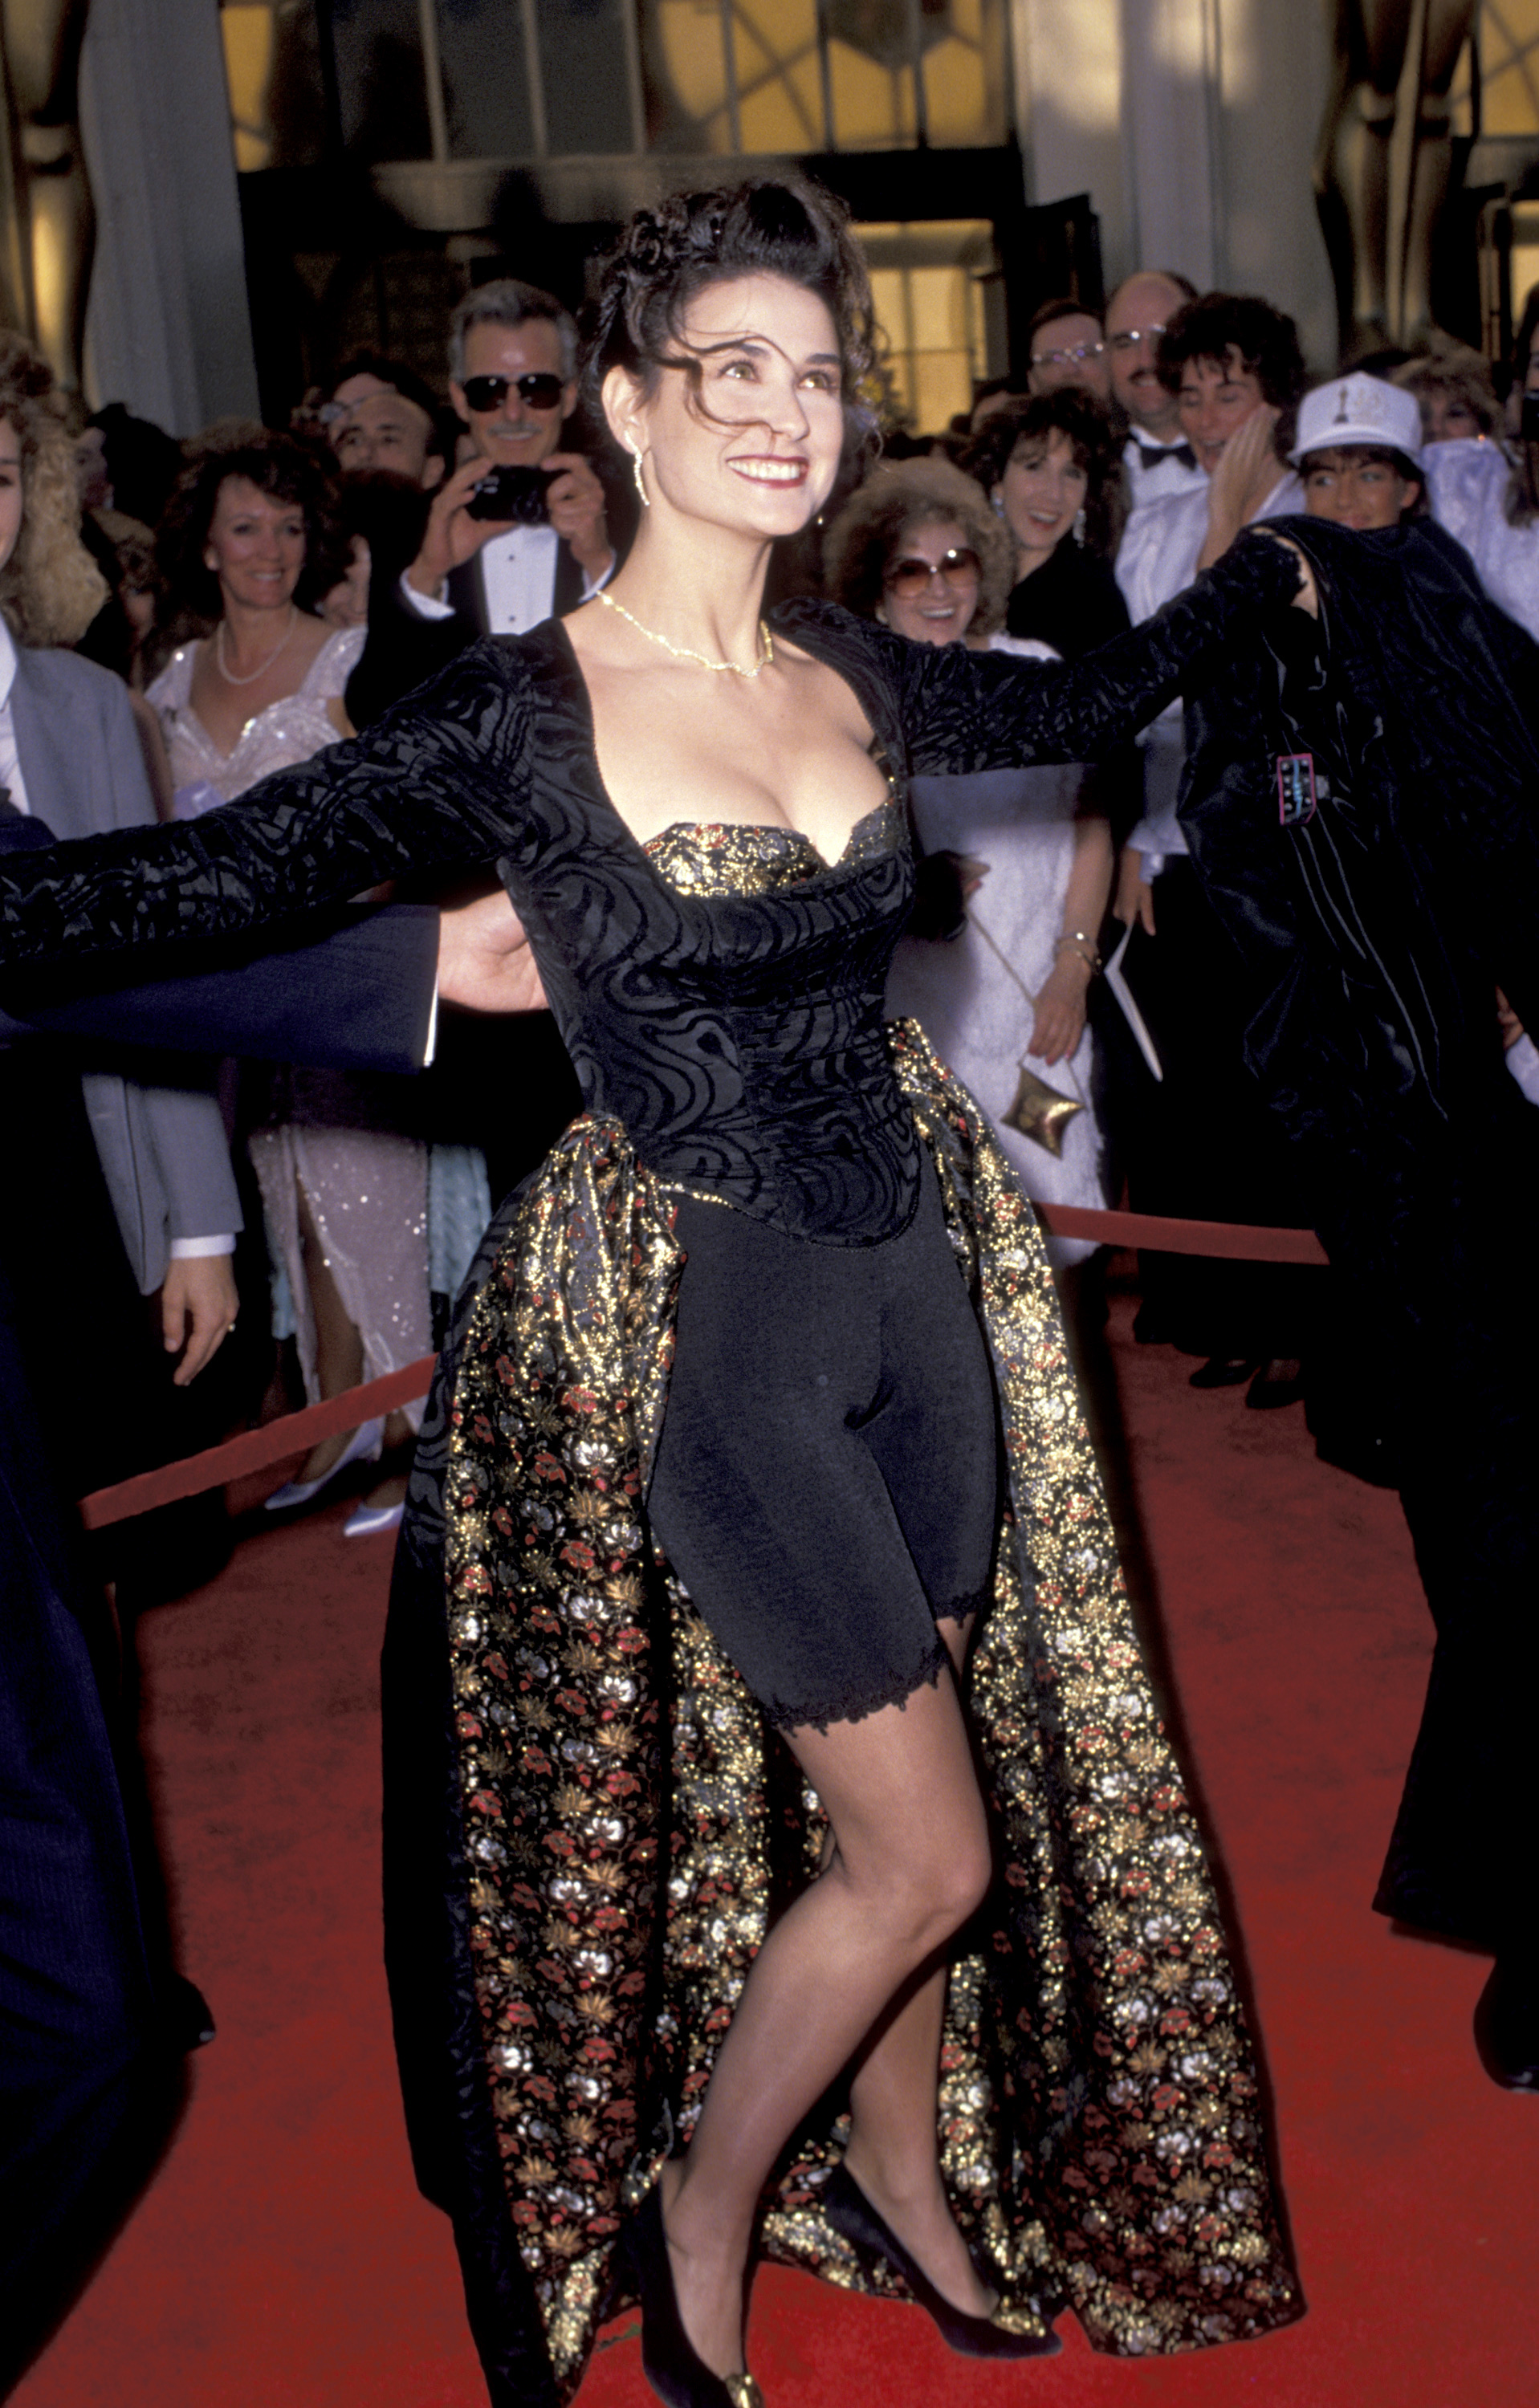 Demi Moore - 1989 Academy Awards